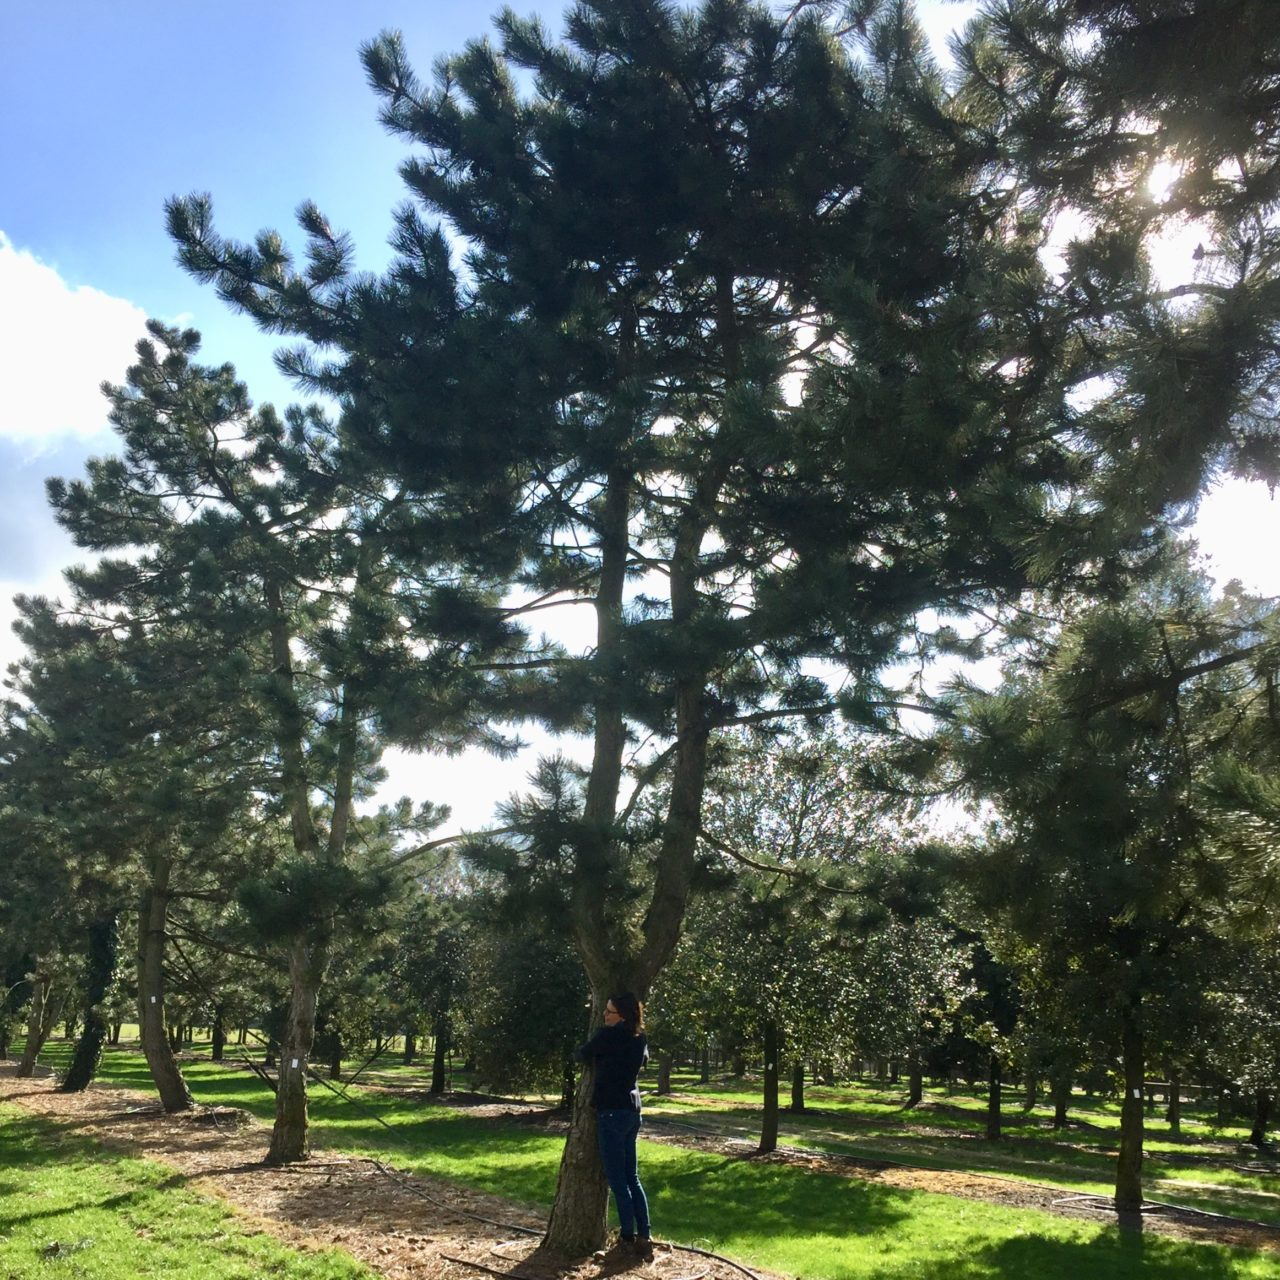 Fabulous large pine for my clients tree shopping in Belgium with me